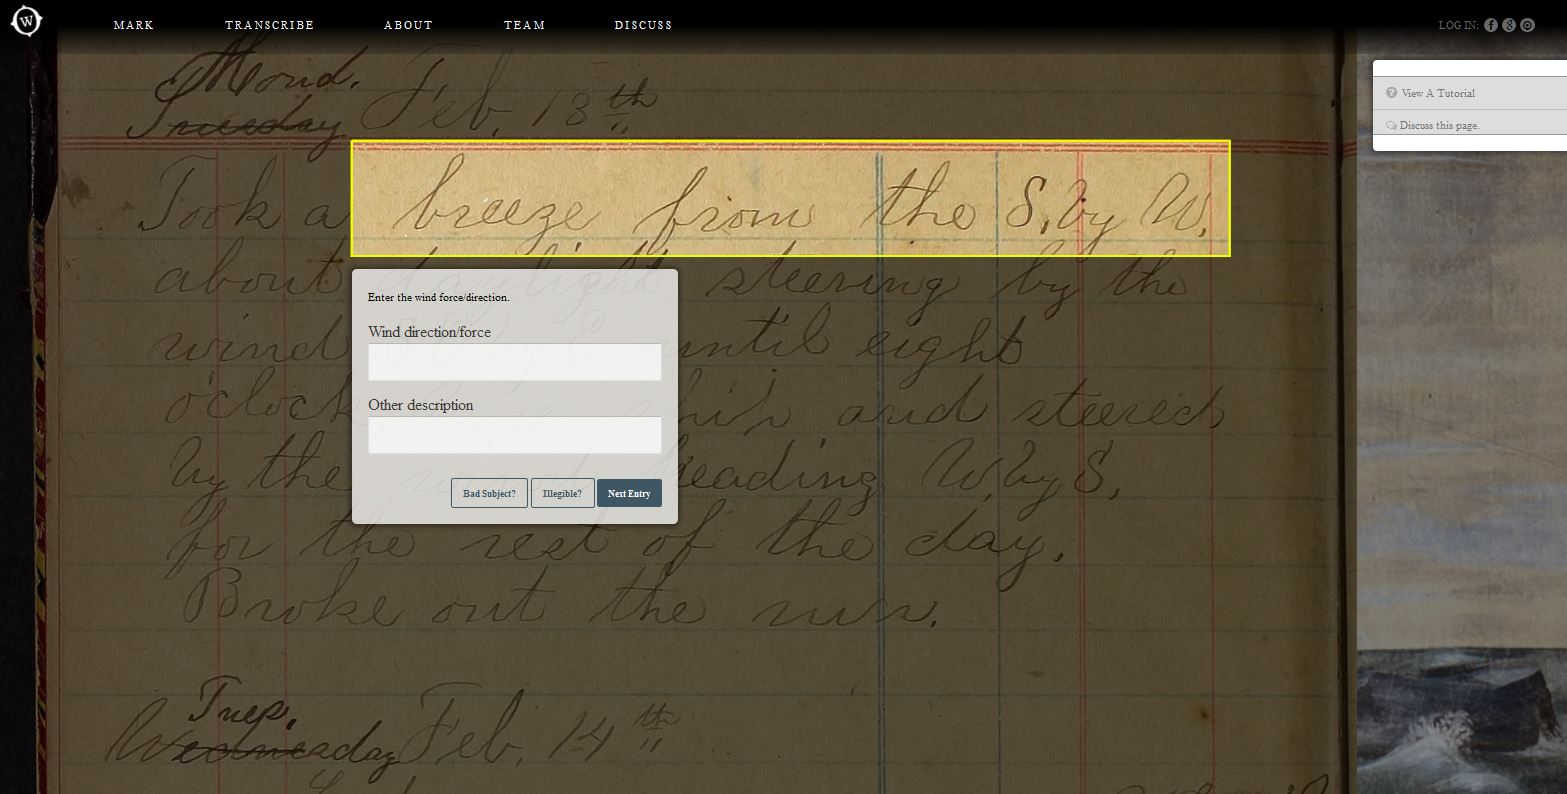 Interface for transcribing logbooks